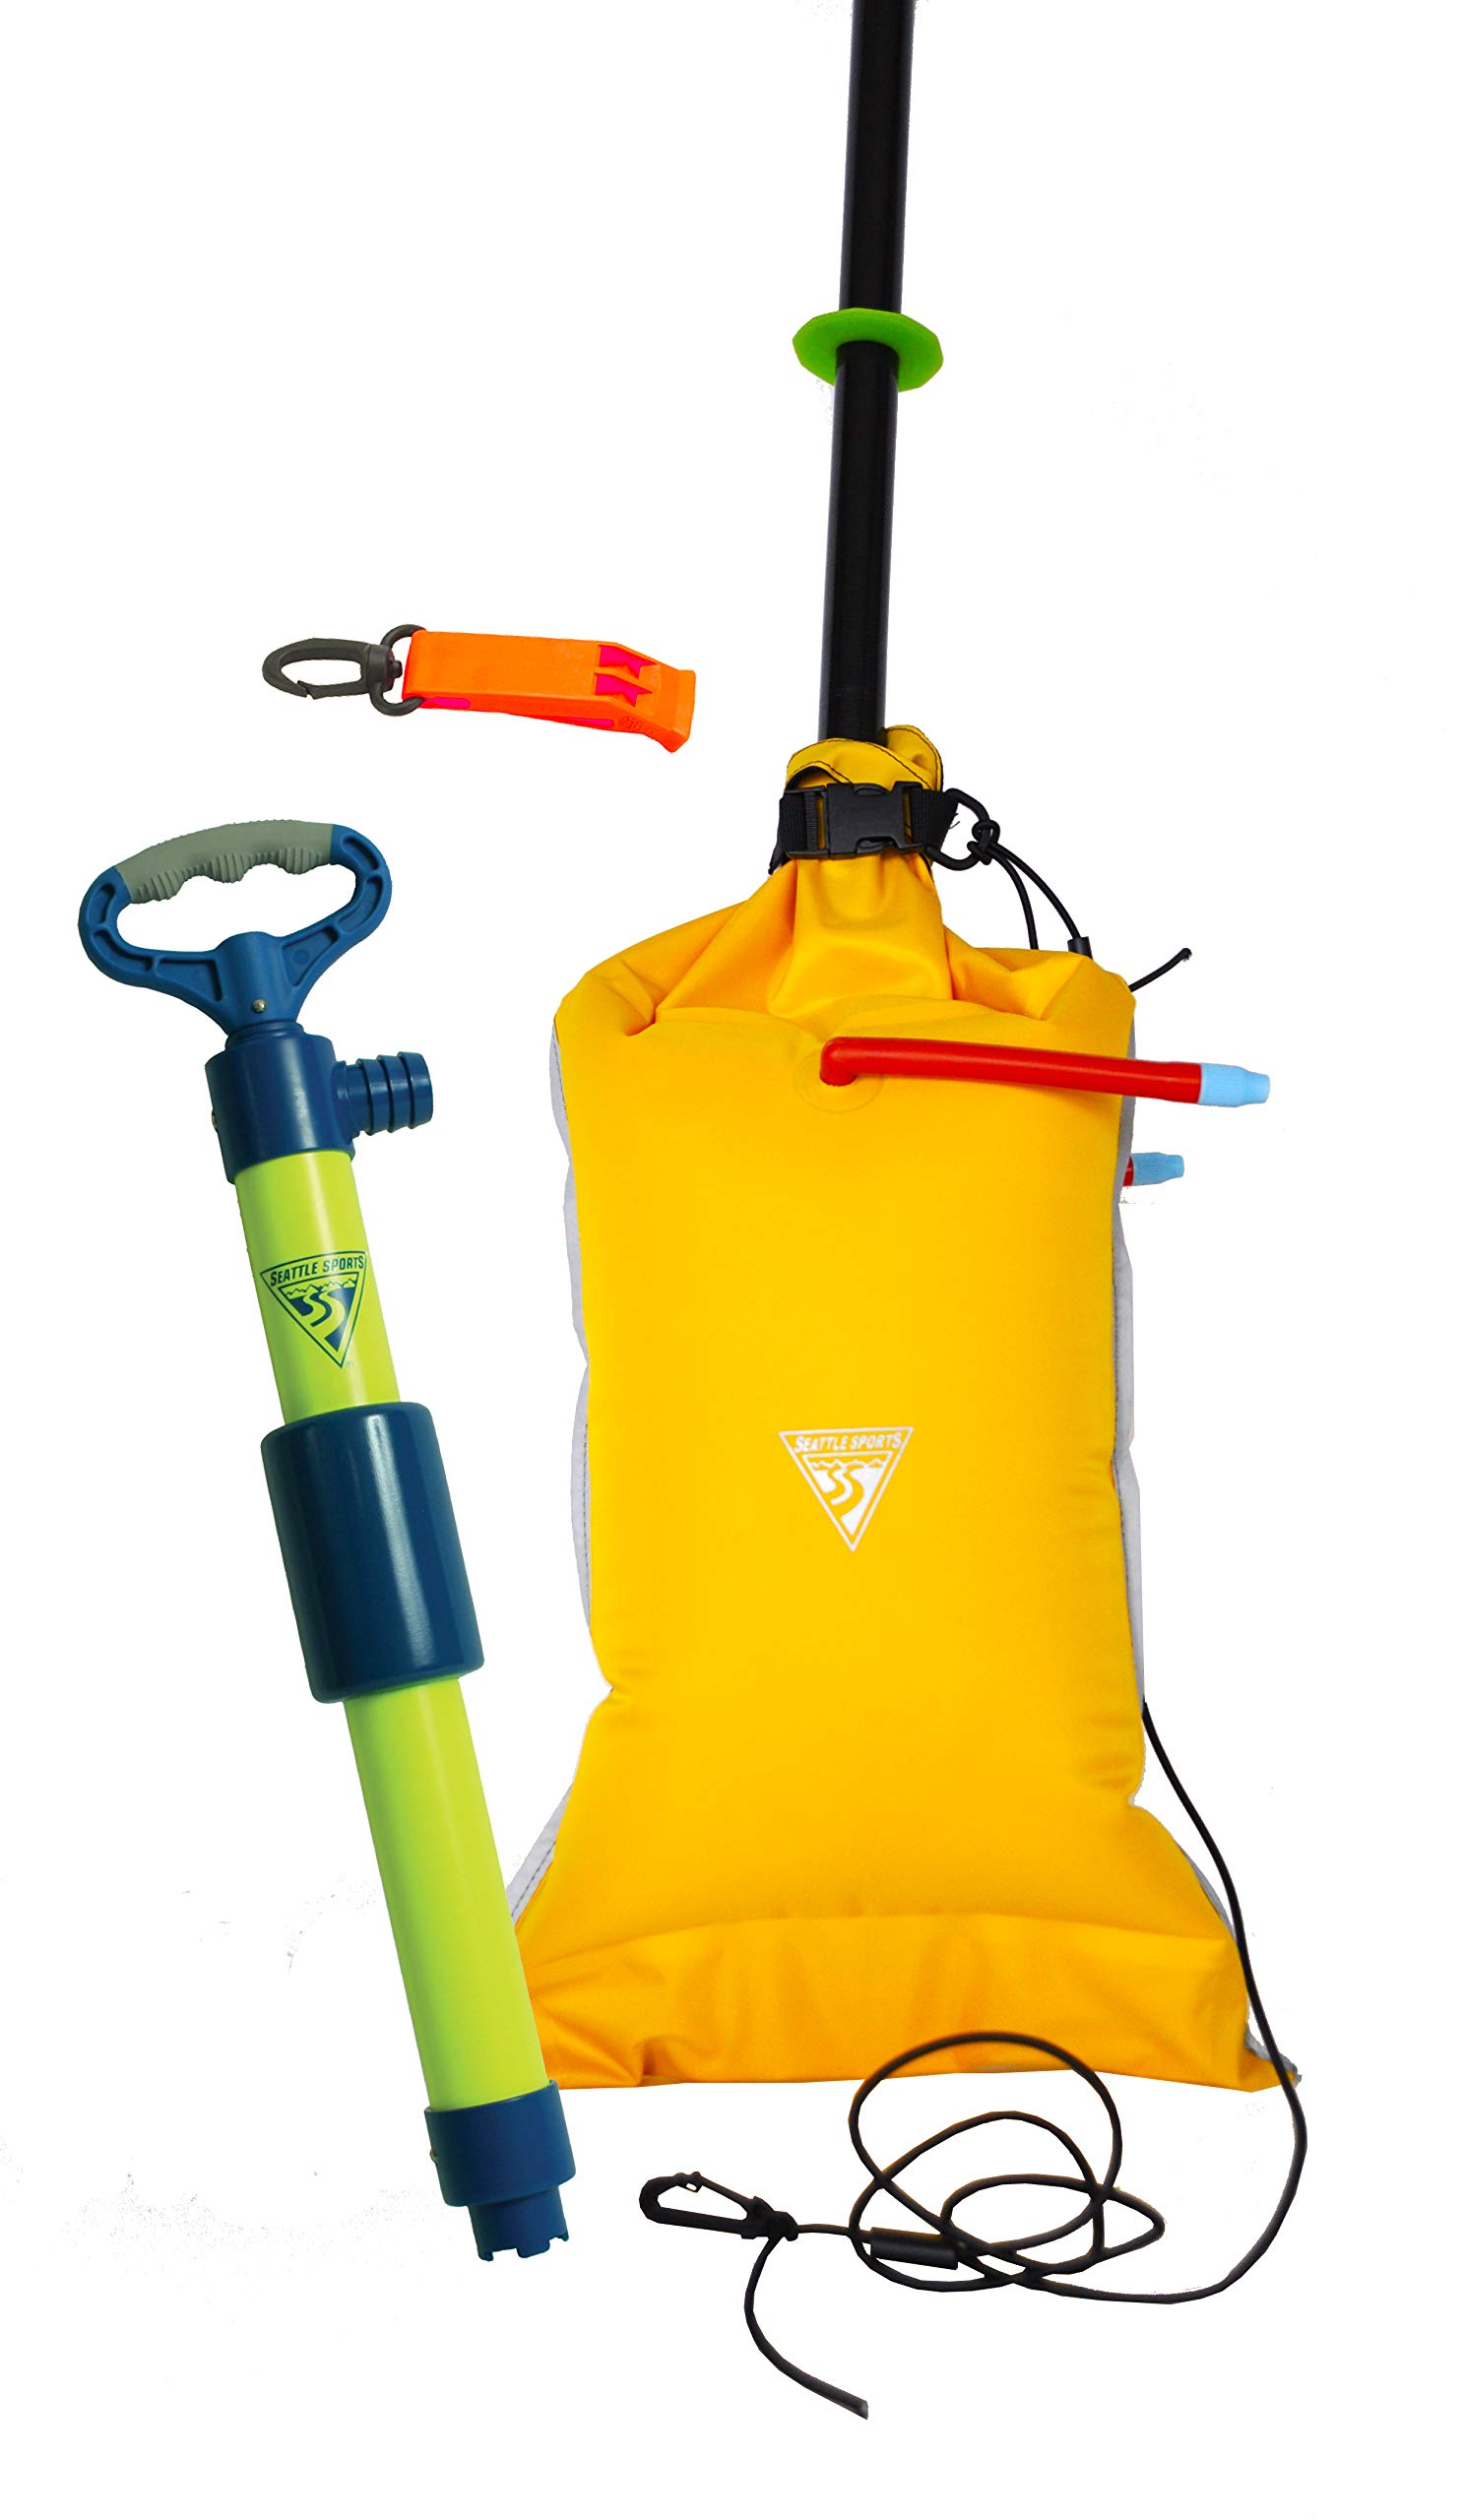 Seattle Sports Basic Safety Kit for Kayaks and Small Boats - Includes Bilge Pump, Paddle Float, and Safety Whistle by Seattle Sports